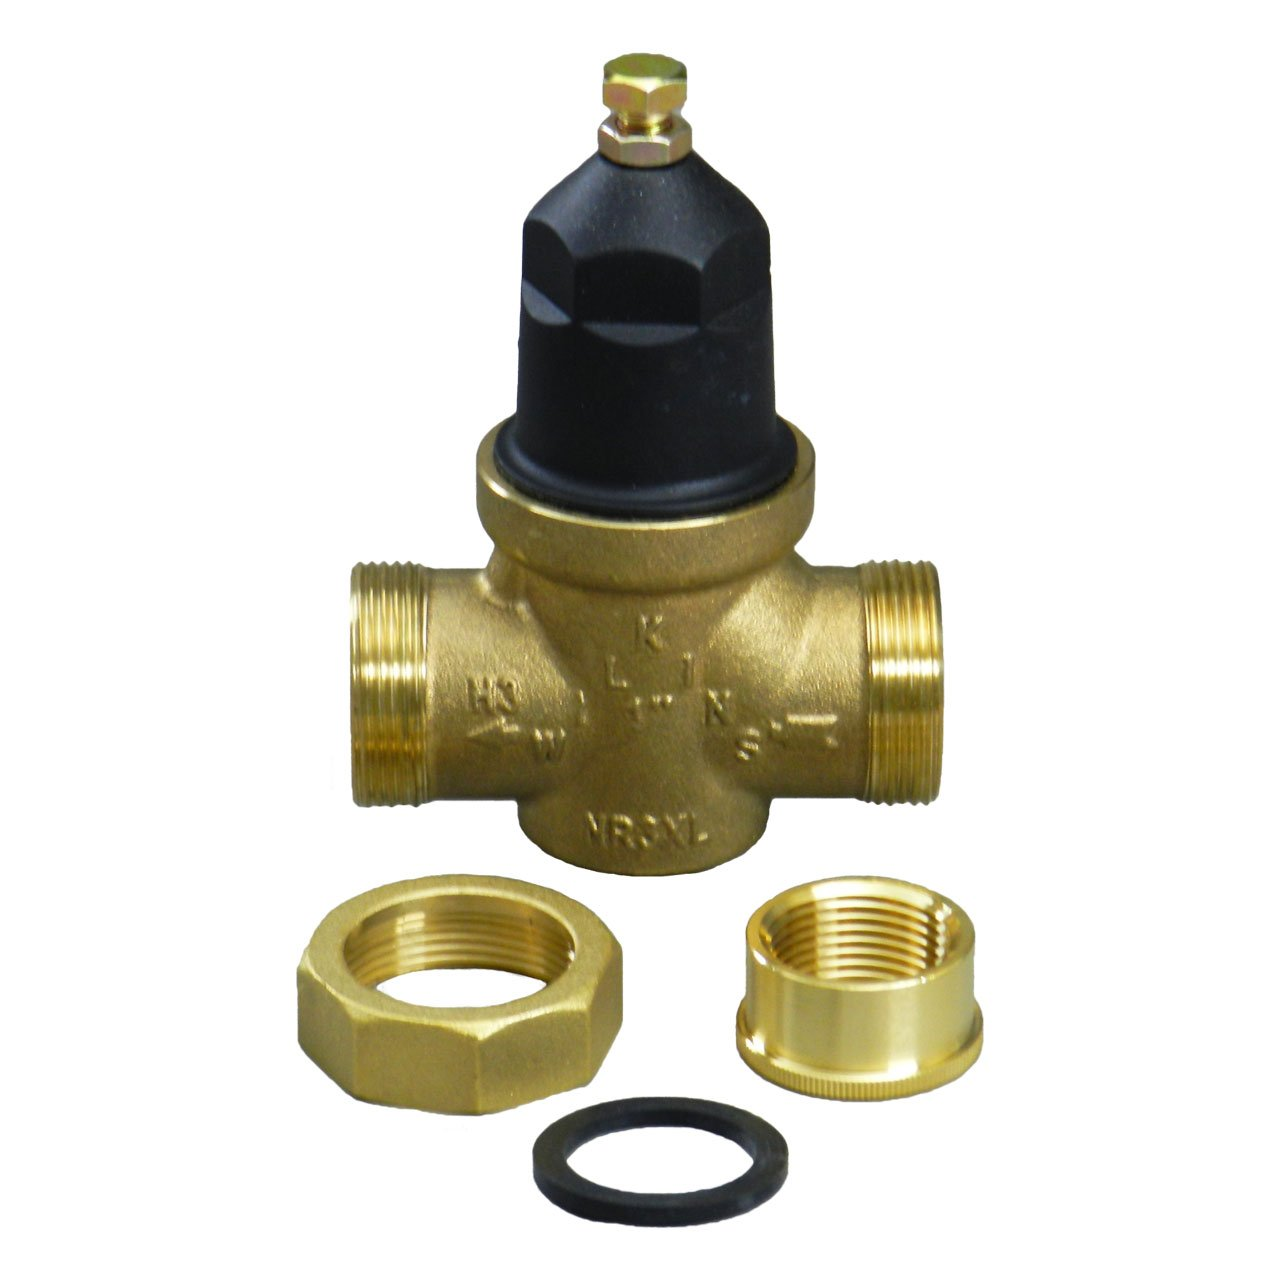 Zurn Wilkins 1-NR3XL 1'' Pressure Reducing Valve